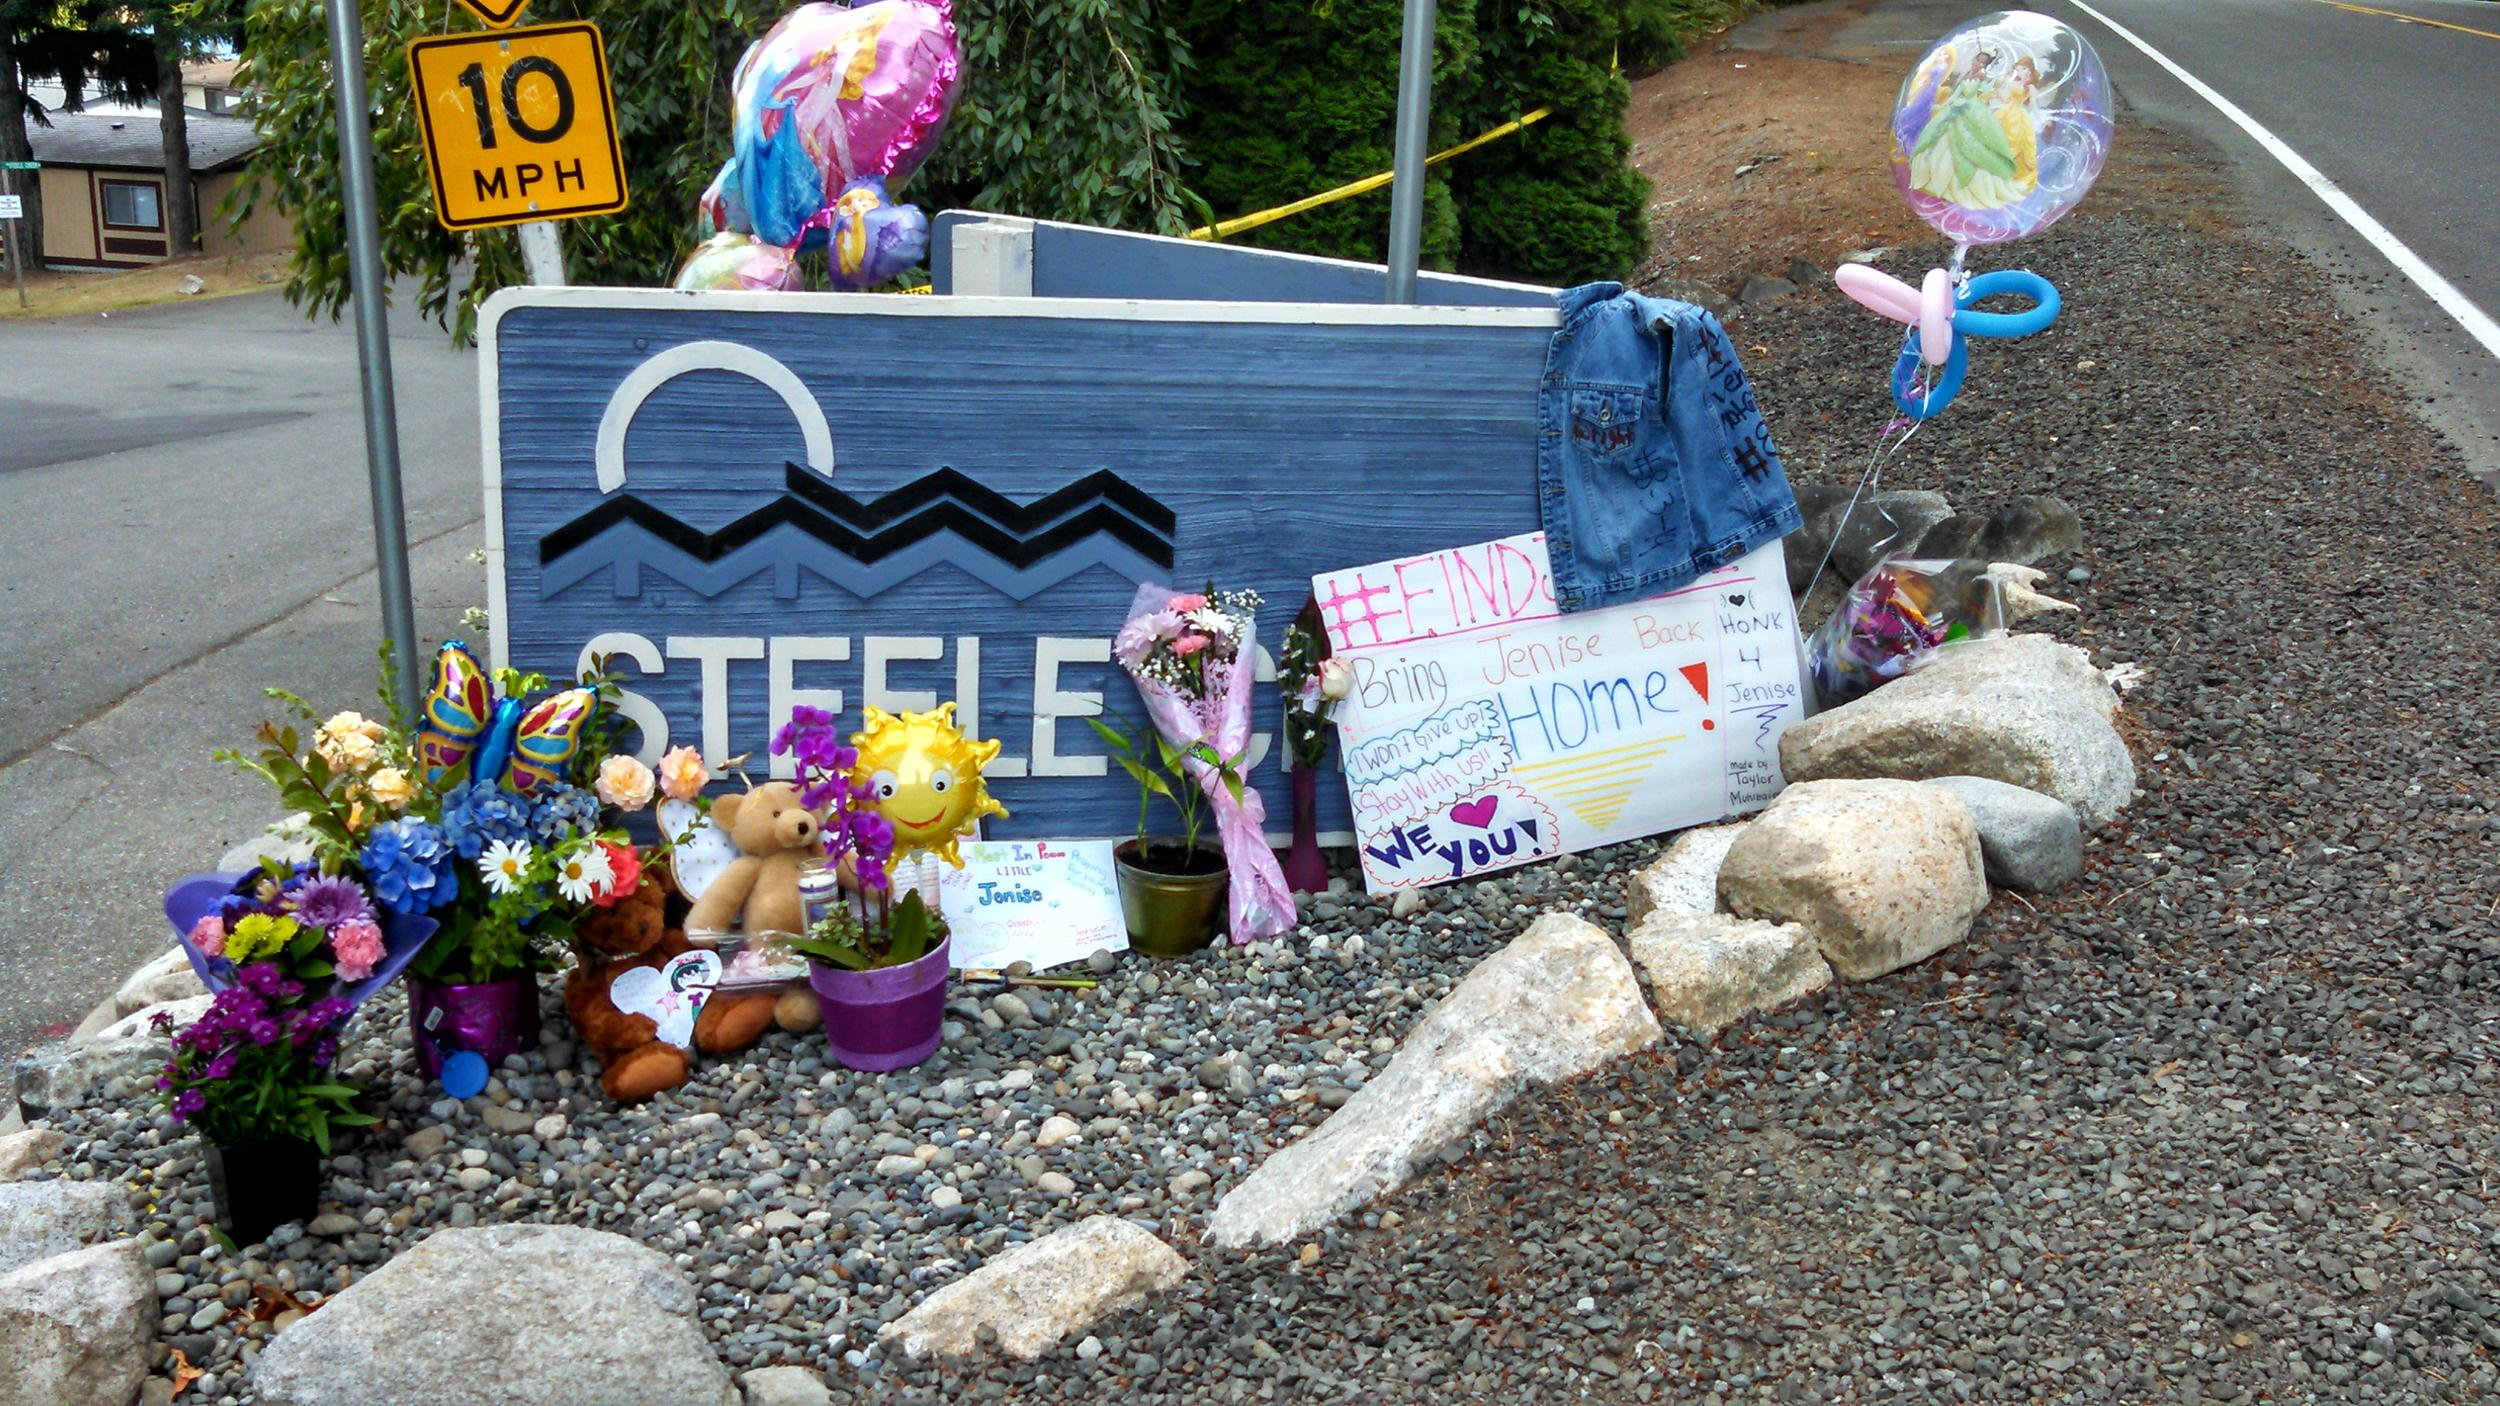 Image: A memorial for Jenise Wright at the entrance to the Steele Creek Mobile Home Park in Bremerton, Wash., where she lived.